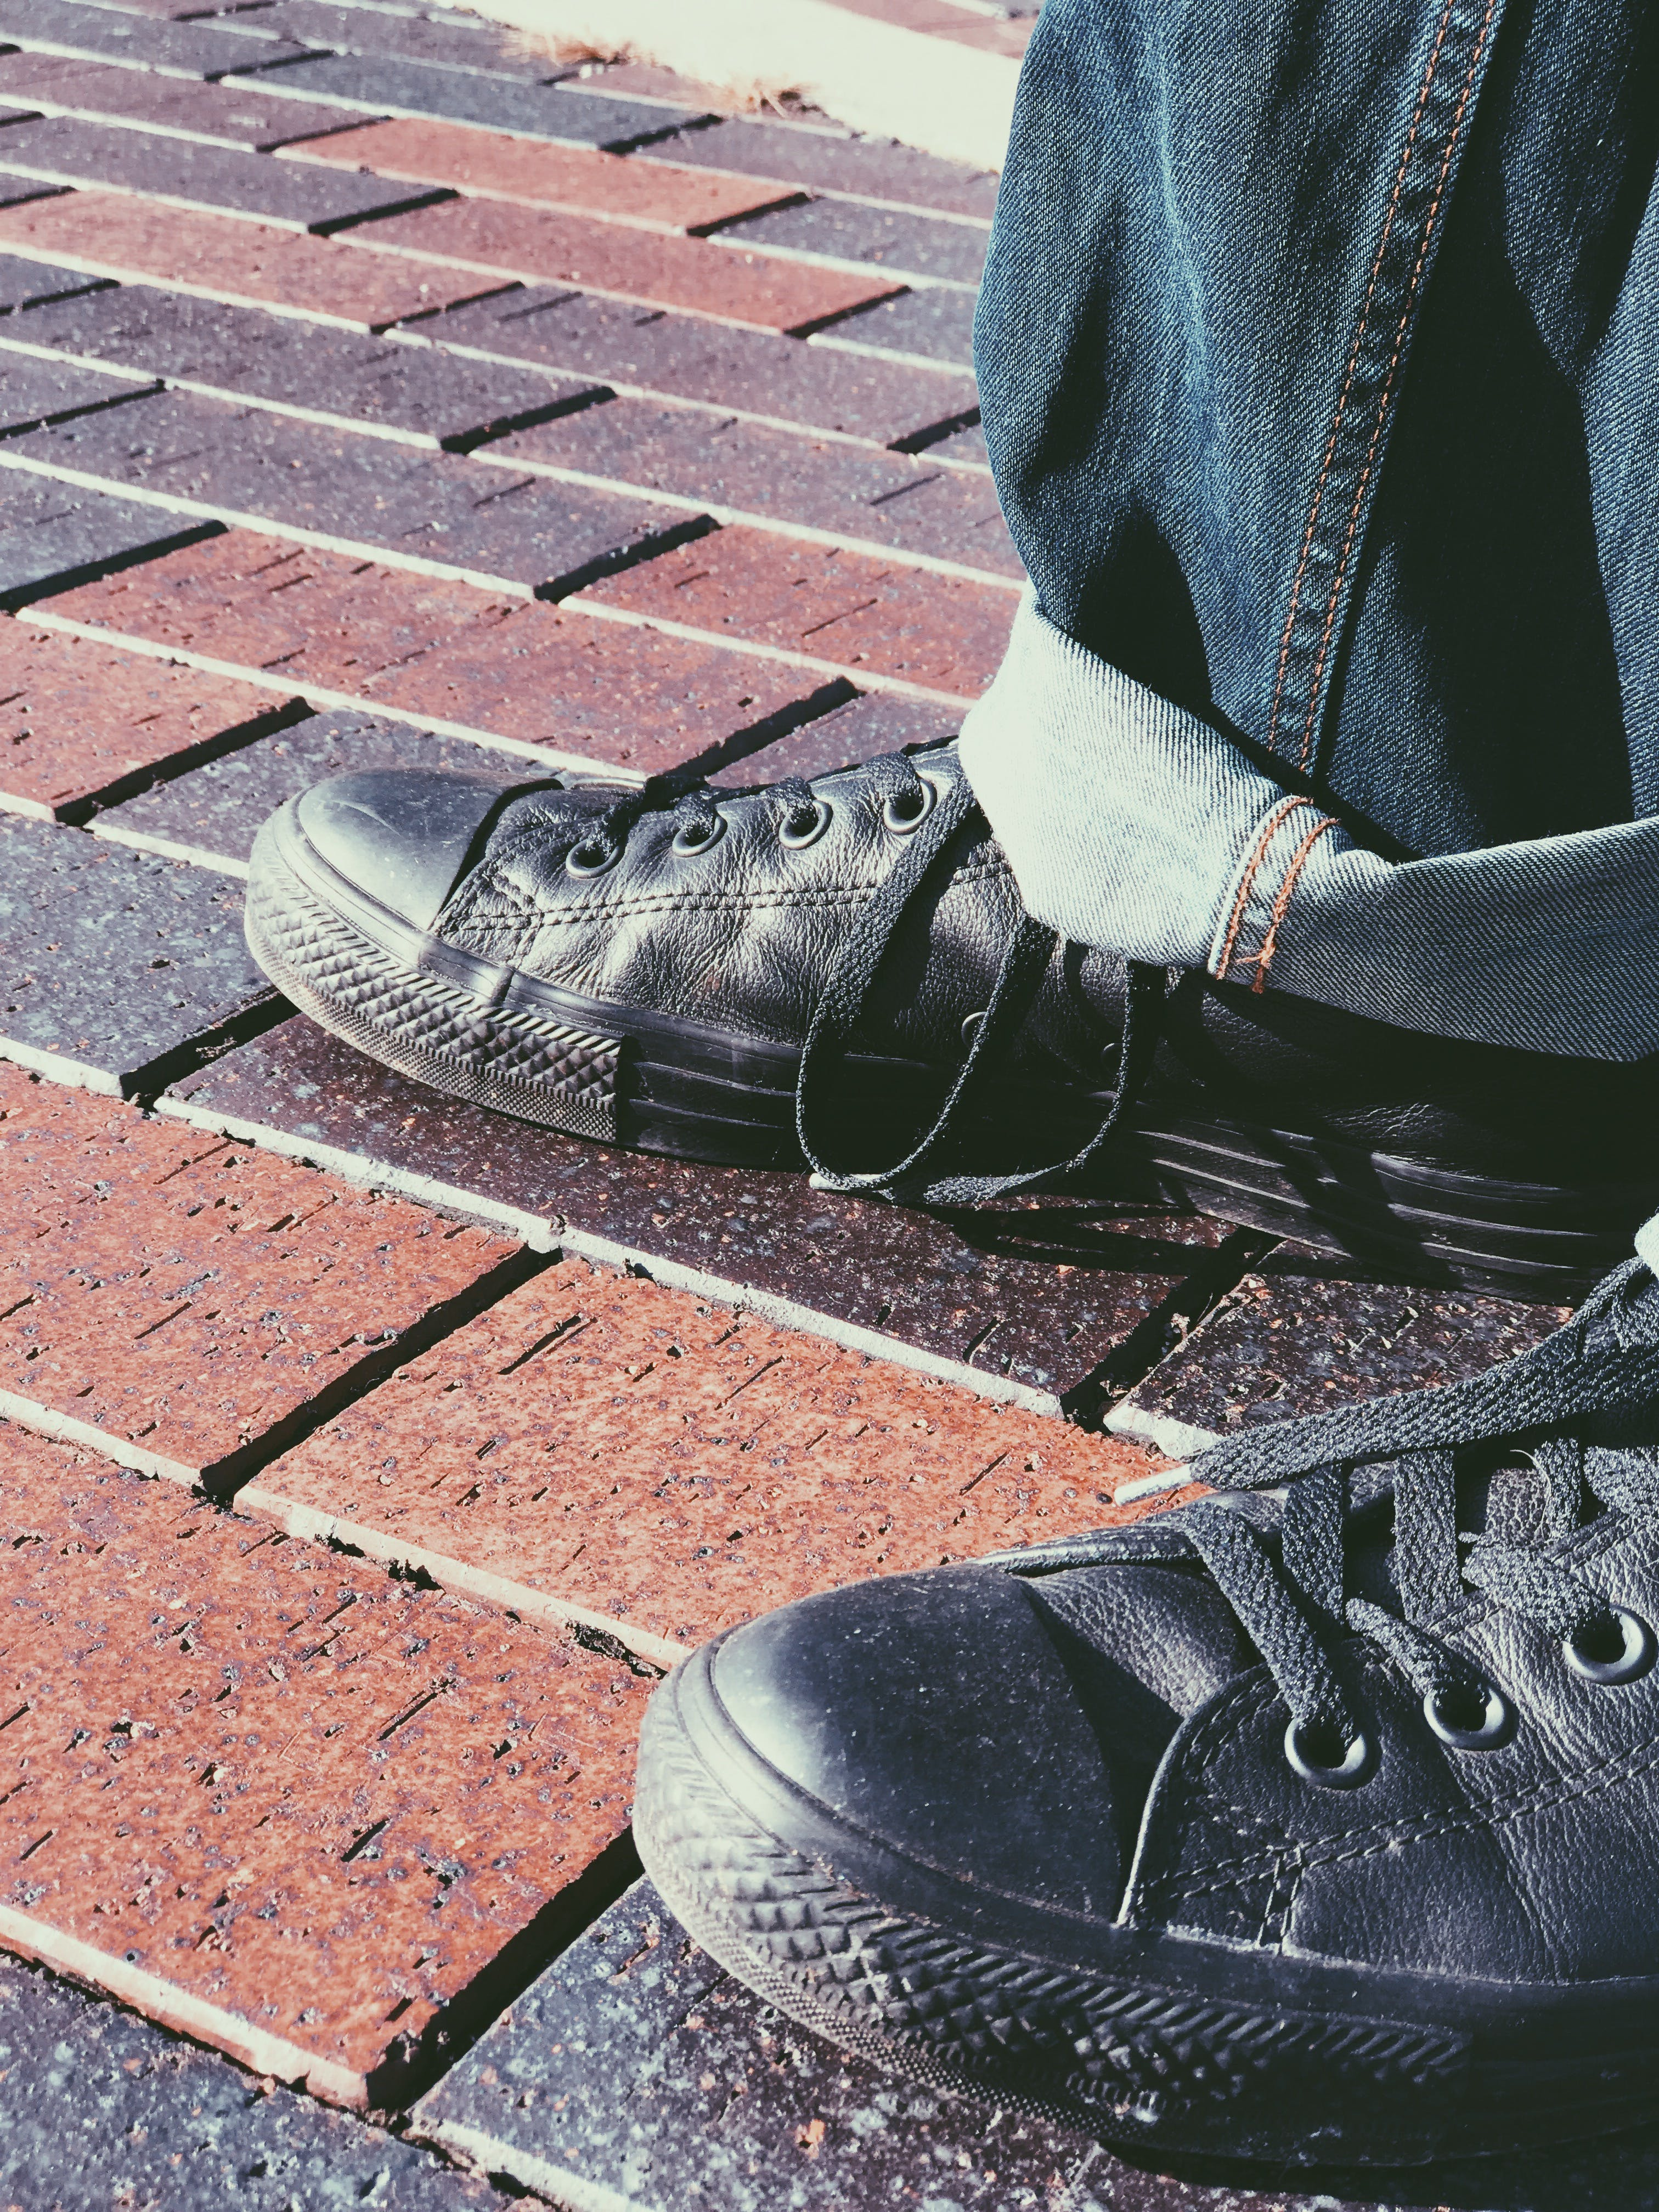 Free stock photo of black, leather, converse all star, converse